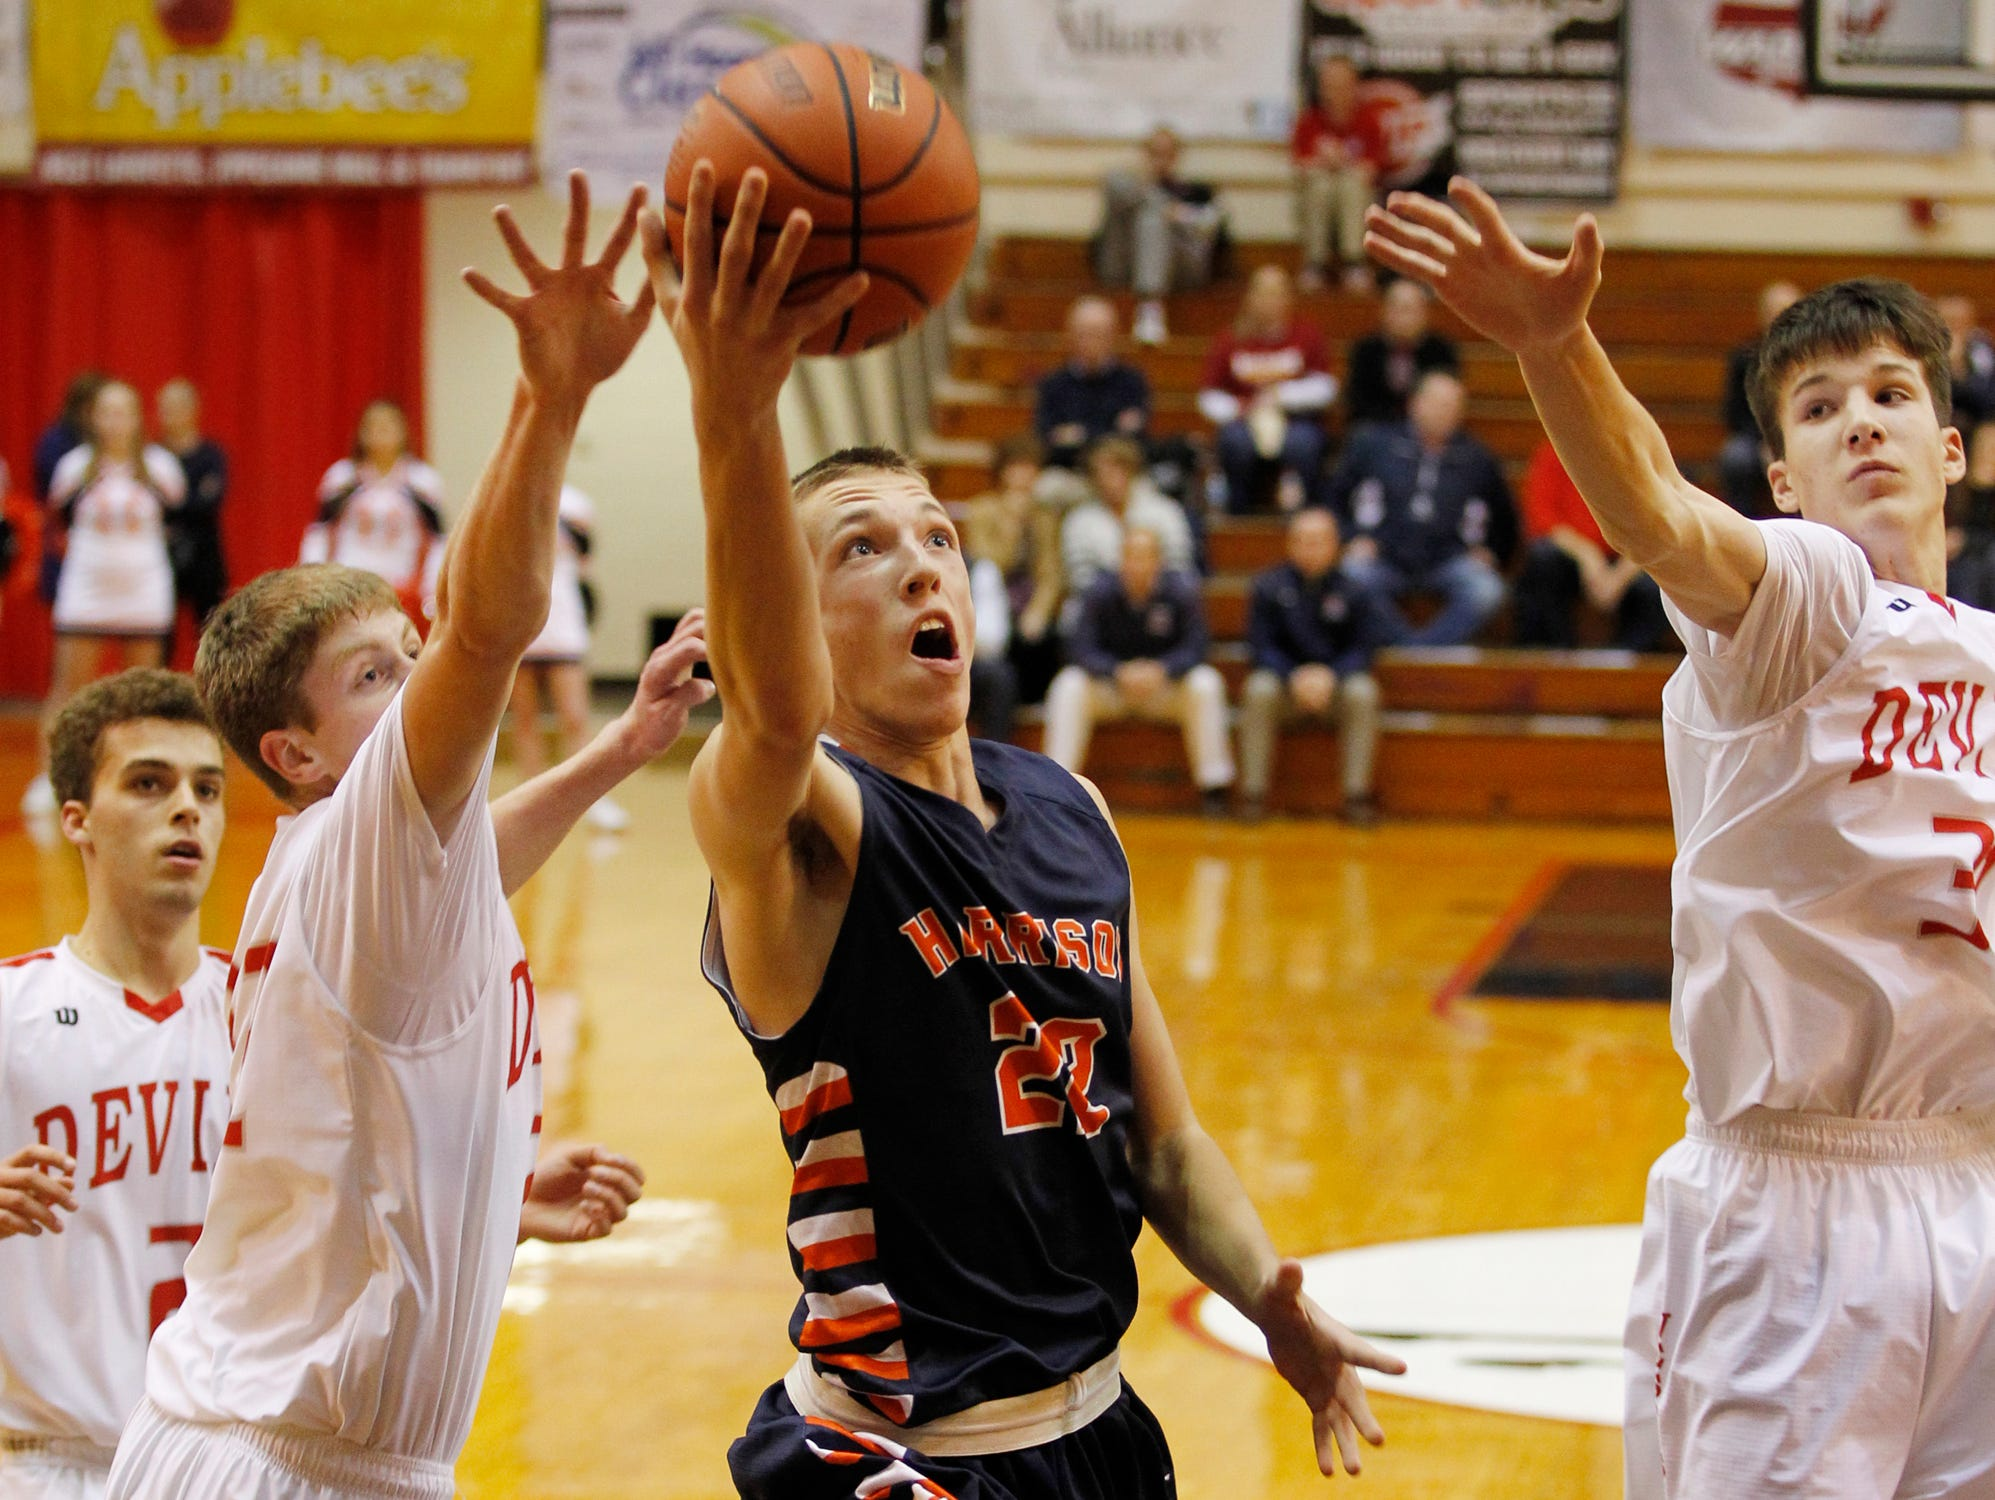 Harrison's Jakub Hall with a drive to the basket against West Lafayette in the J&C Hoops Classic Tuesday, December 1, 2015, at Lafayette Jeff. Harrison defeated West Lafayette 52-40.